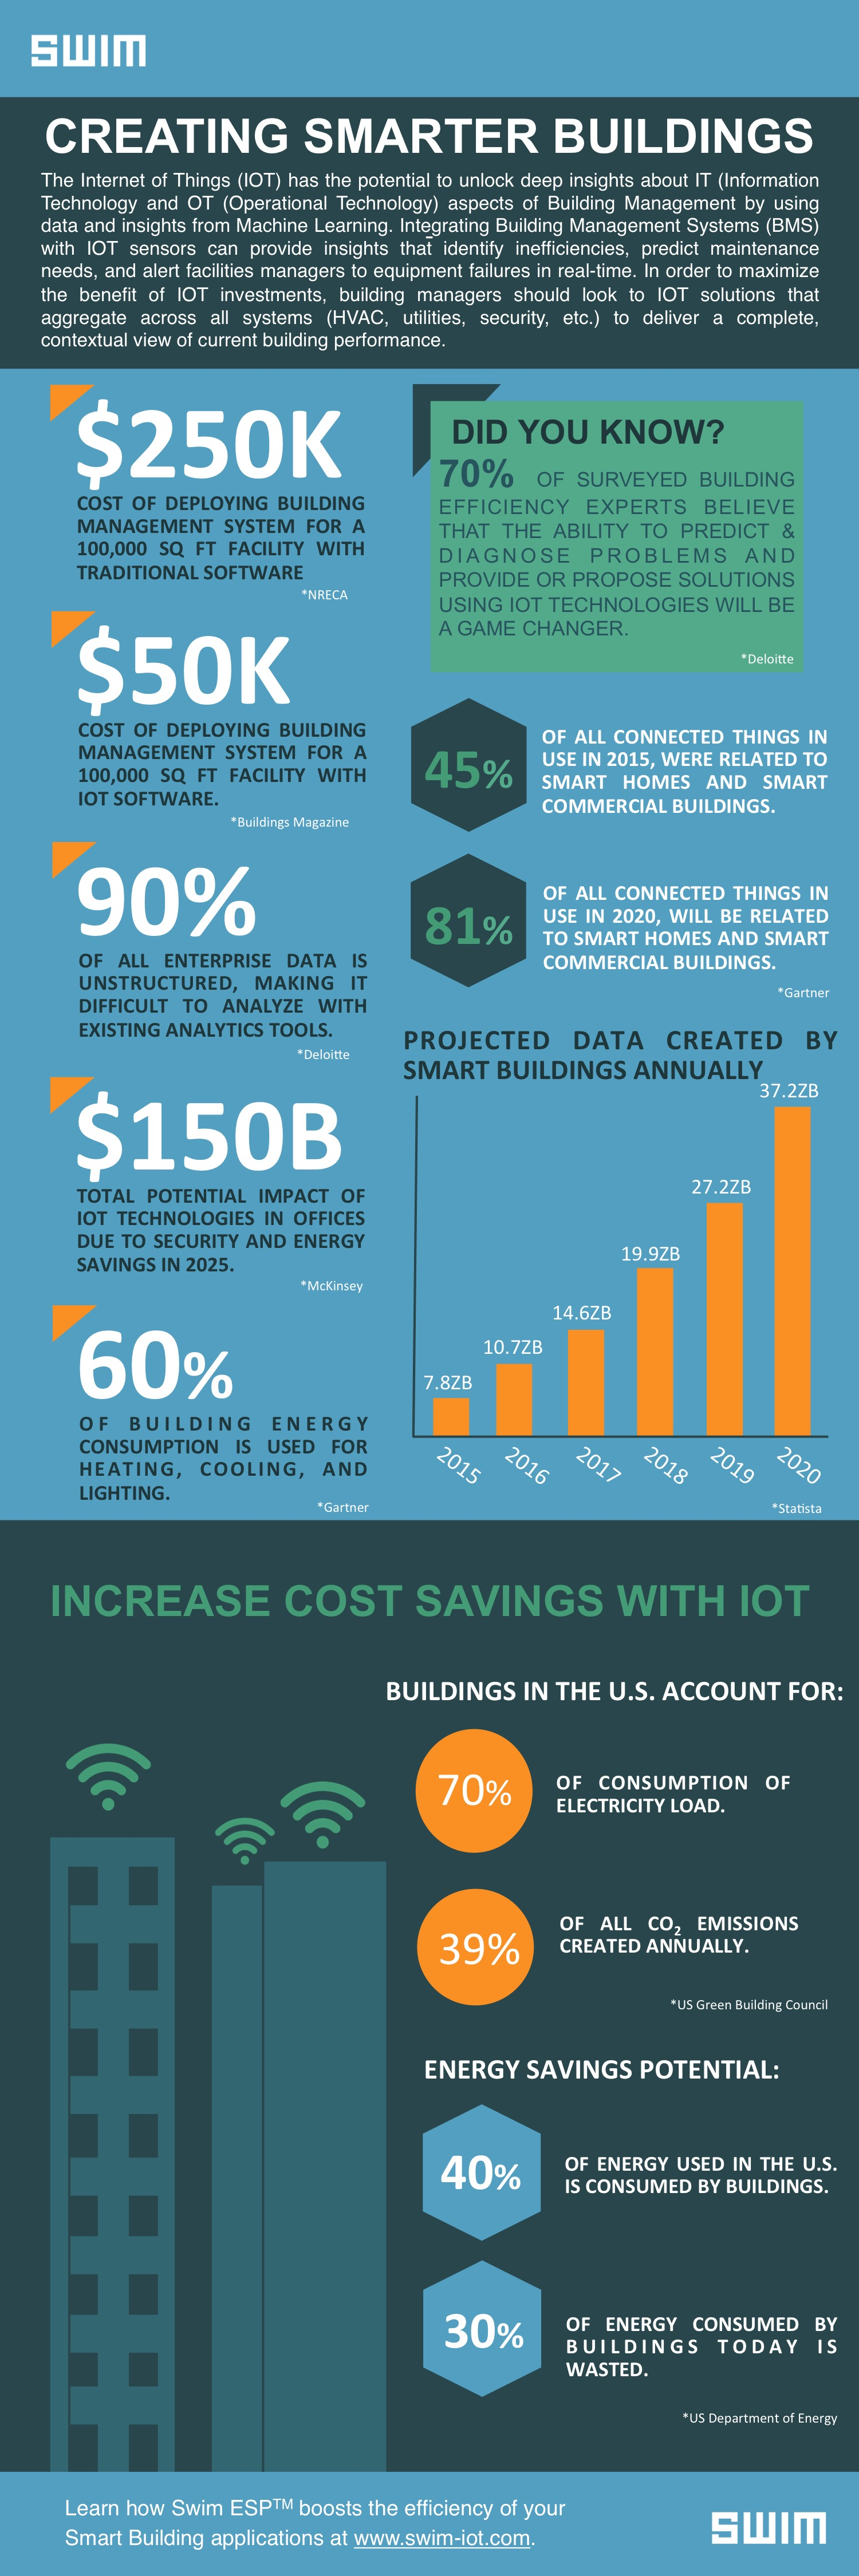 Swim_Increase Cost Savings with Smarter Buildings_Infographic